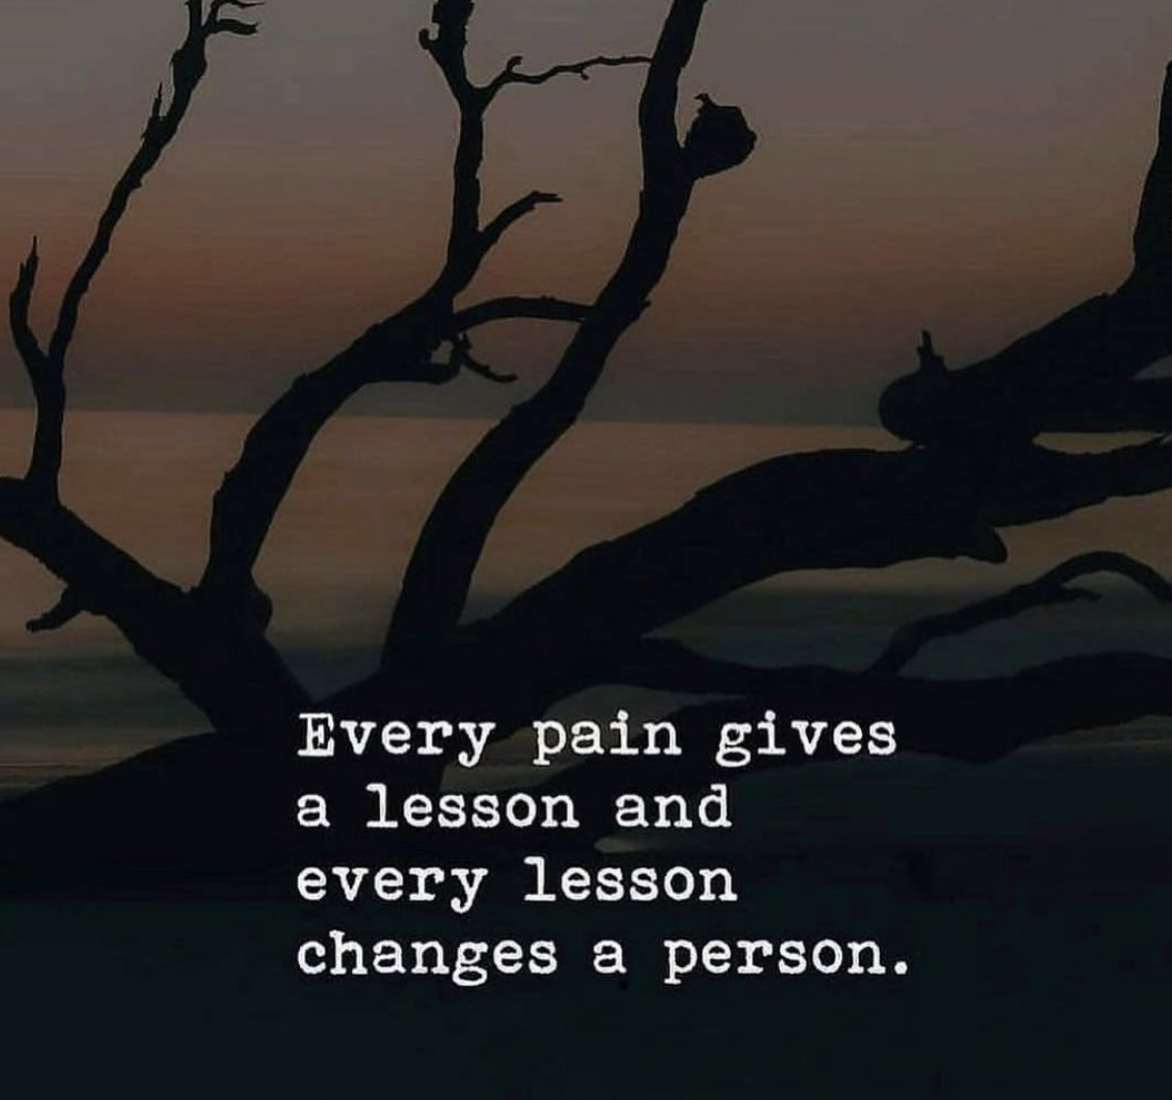 Every pain gives a lesson and every lesson changes a person. https://inspirational.ly